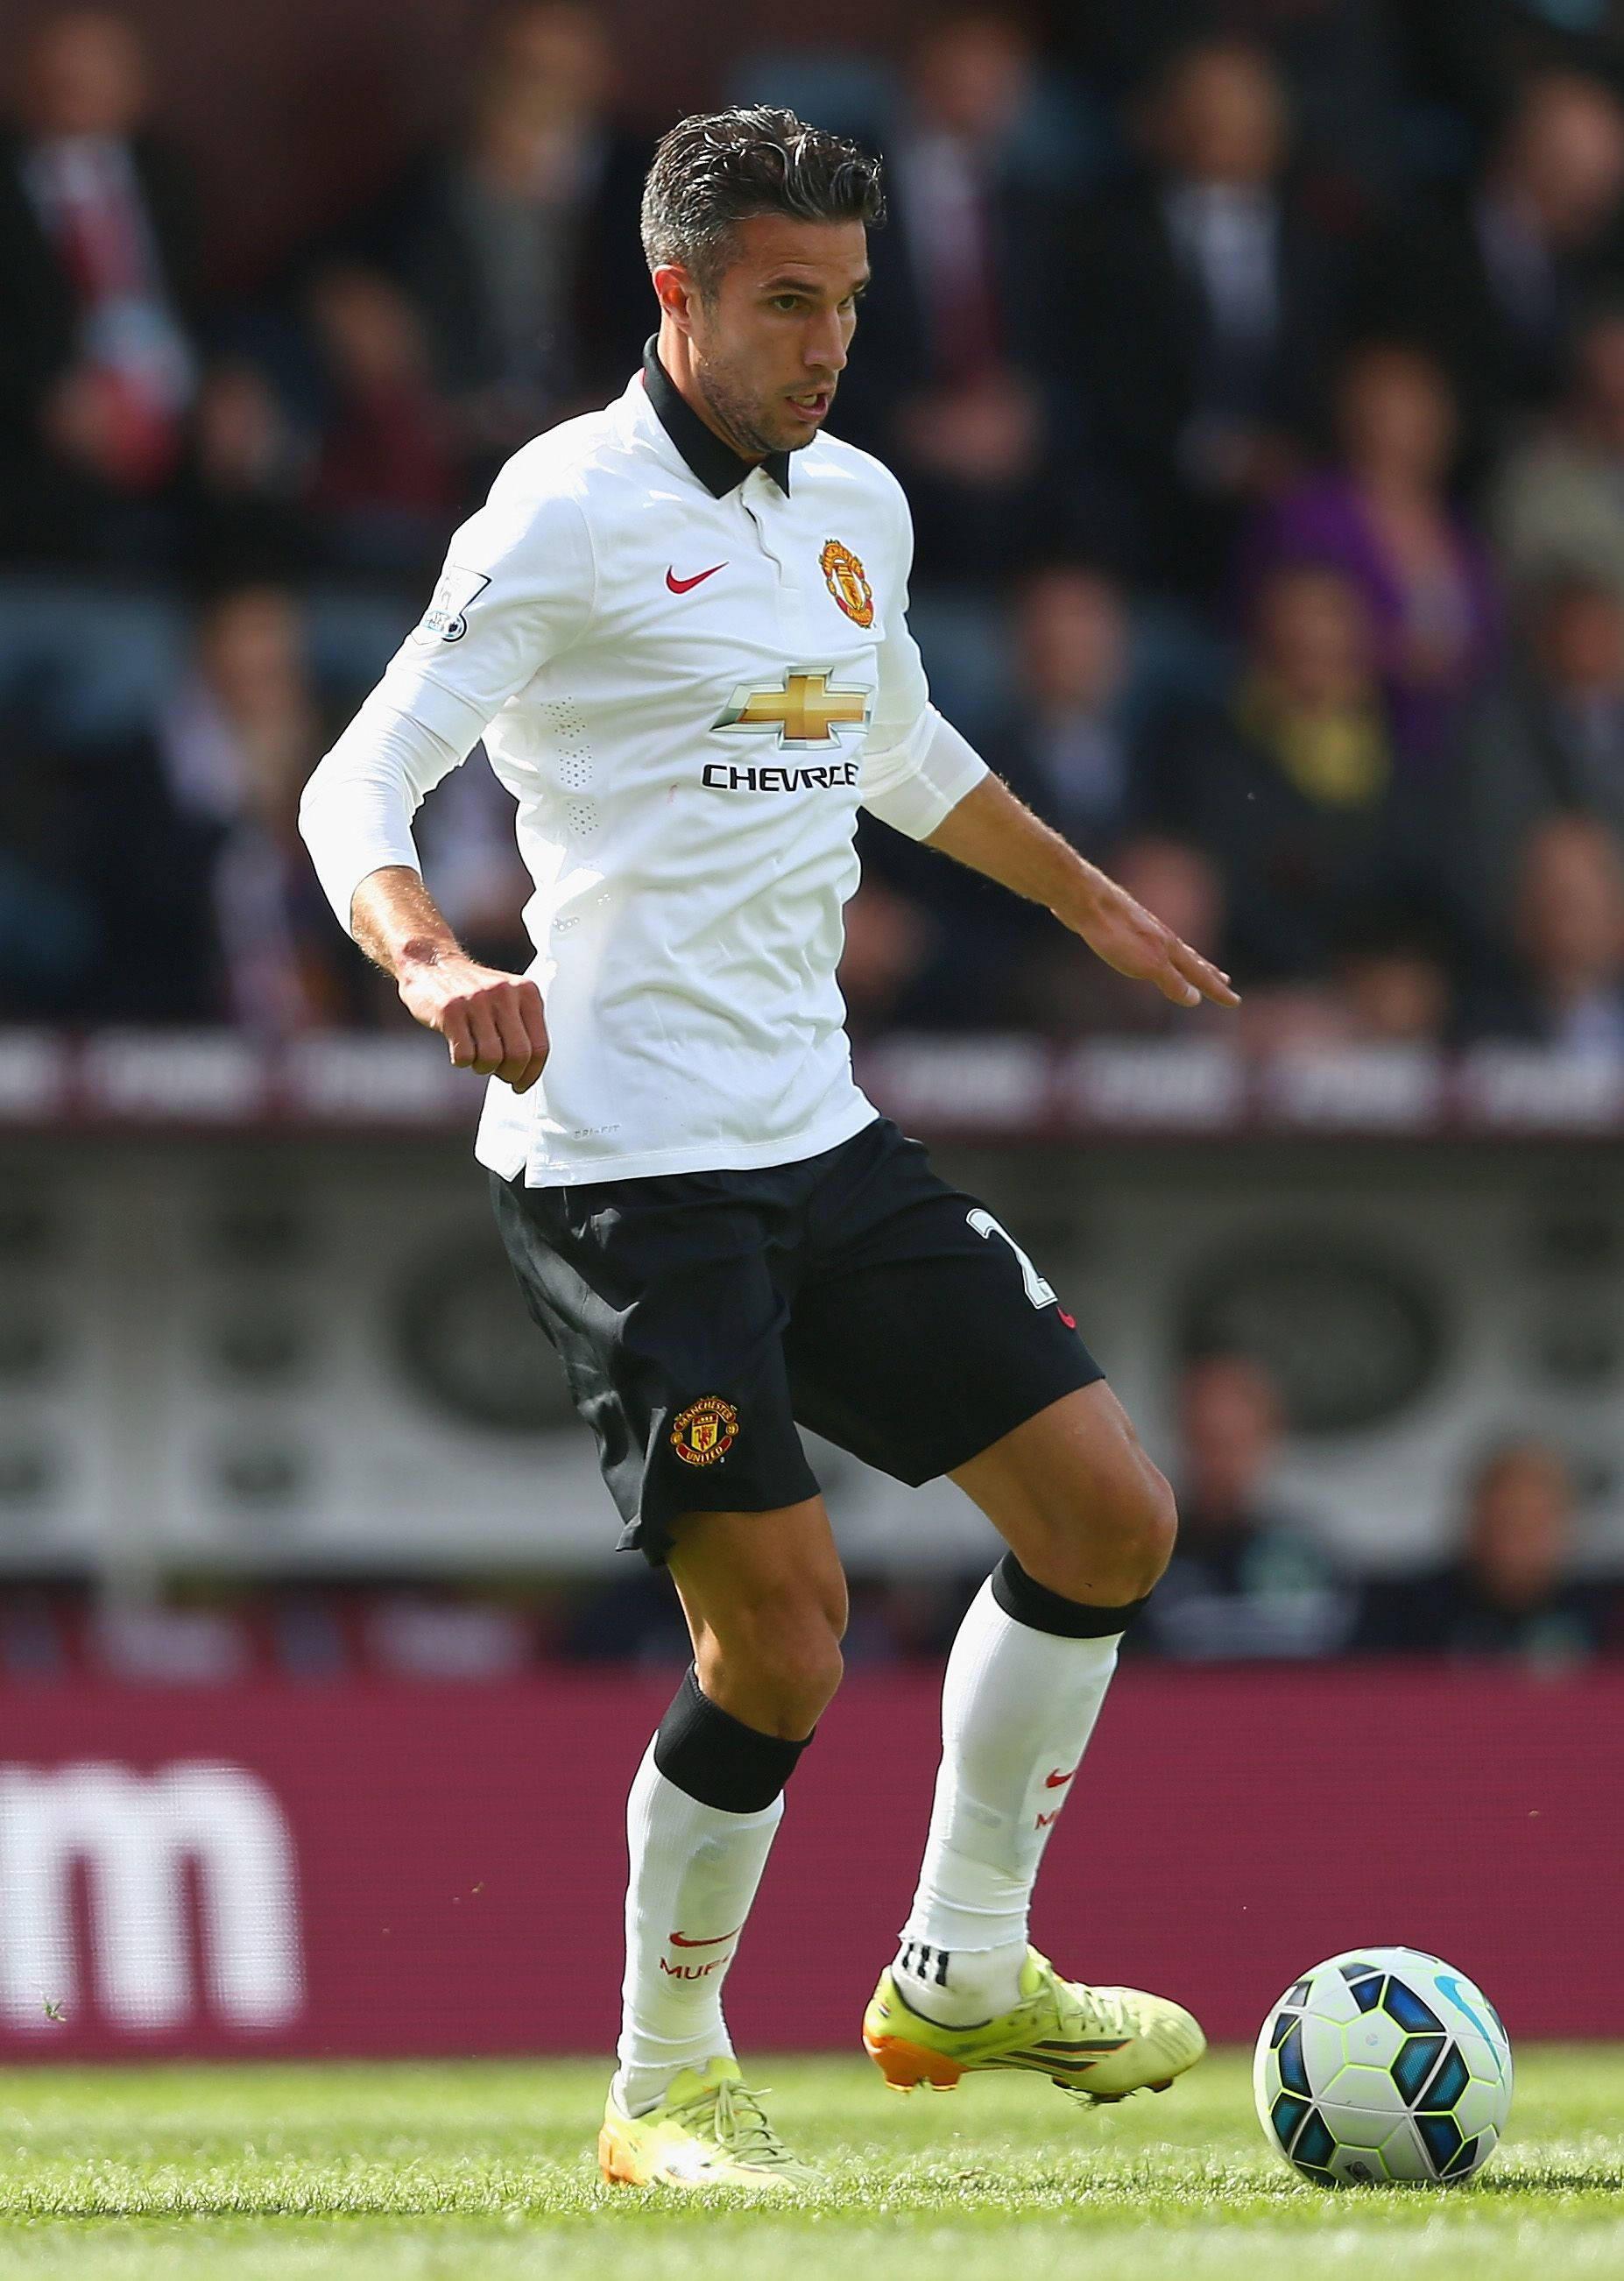 Manutd Striker Robin Van Persie Plays His First Game In The 2014 15 Away Kit Manchester United Manchester United Old Trafford Manchester United Football Club